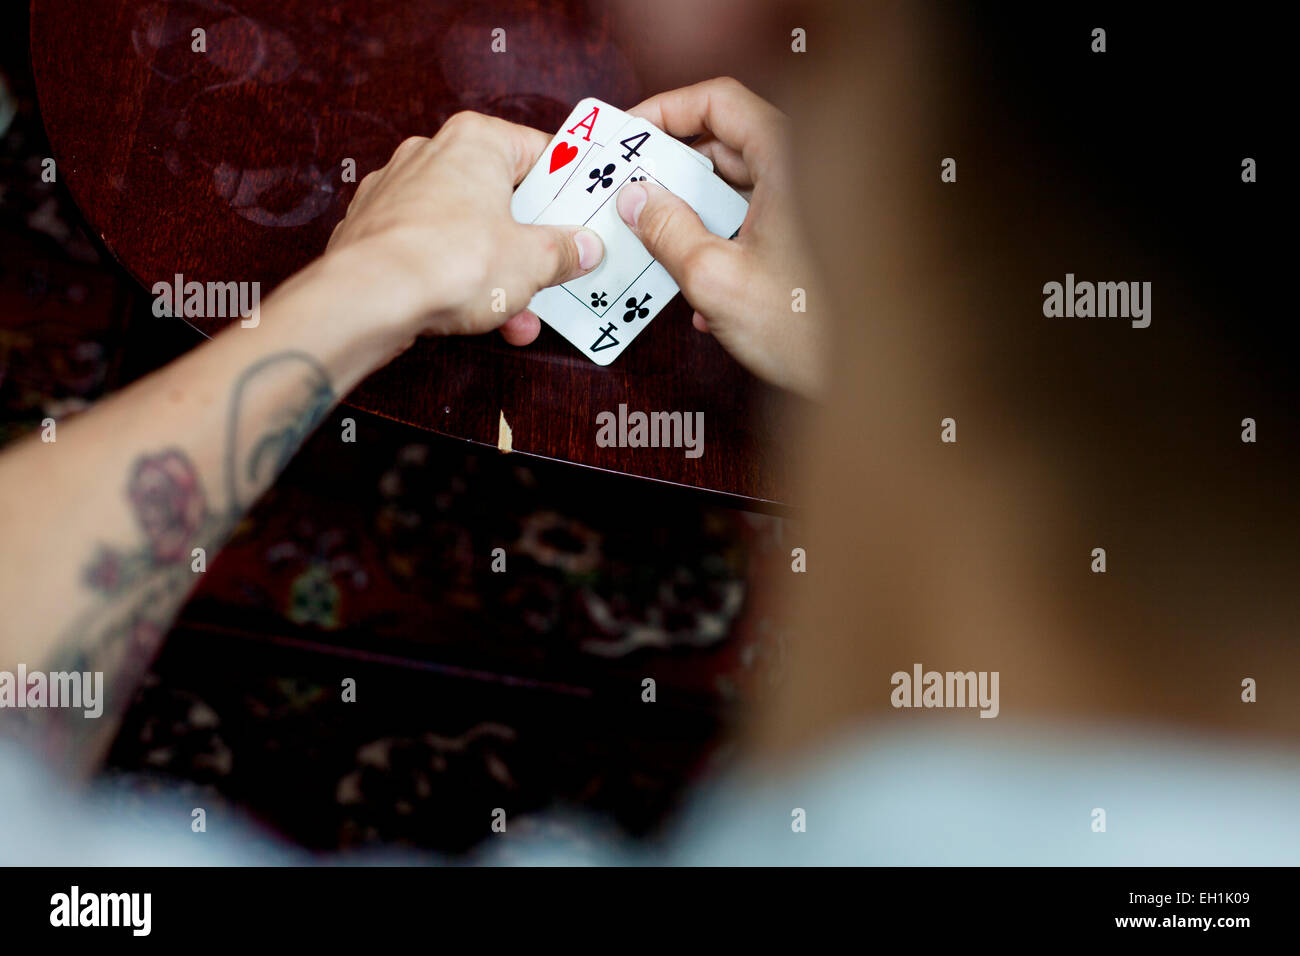 Cropped image of man playing cards at home - Stock Image